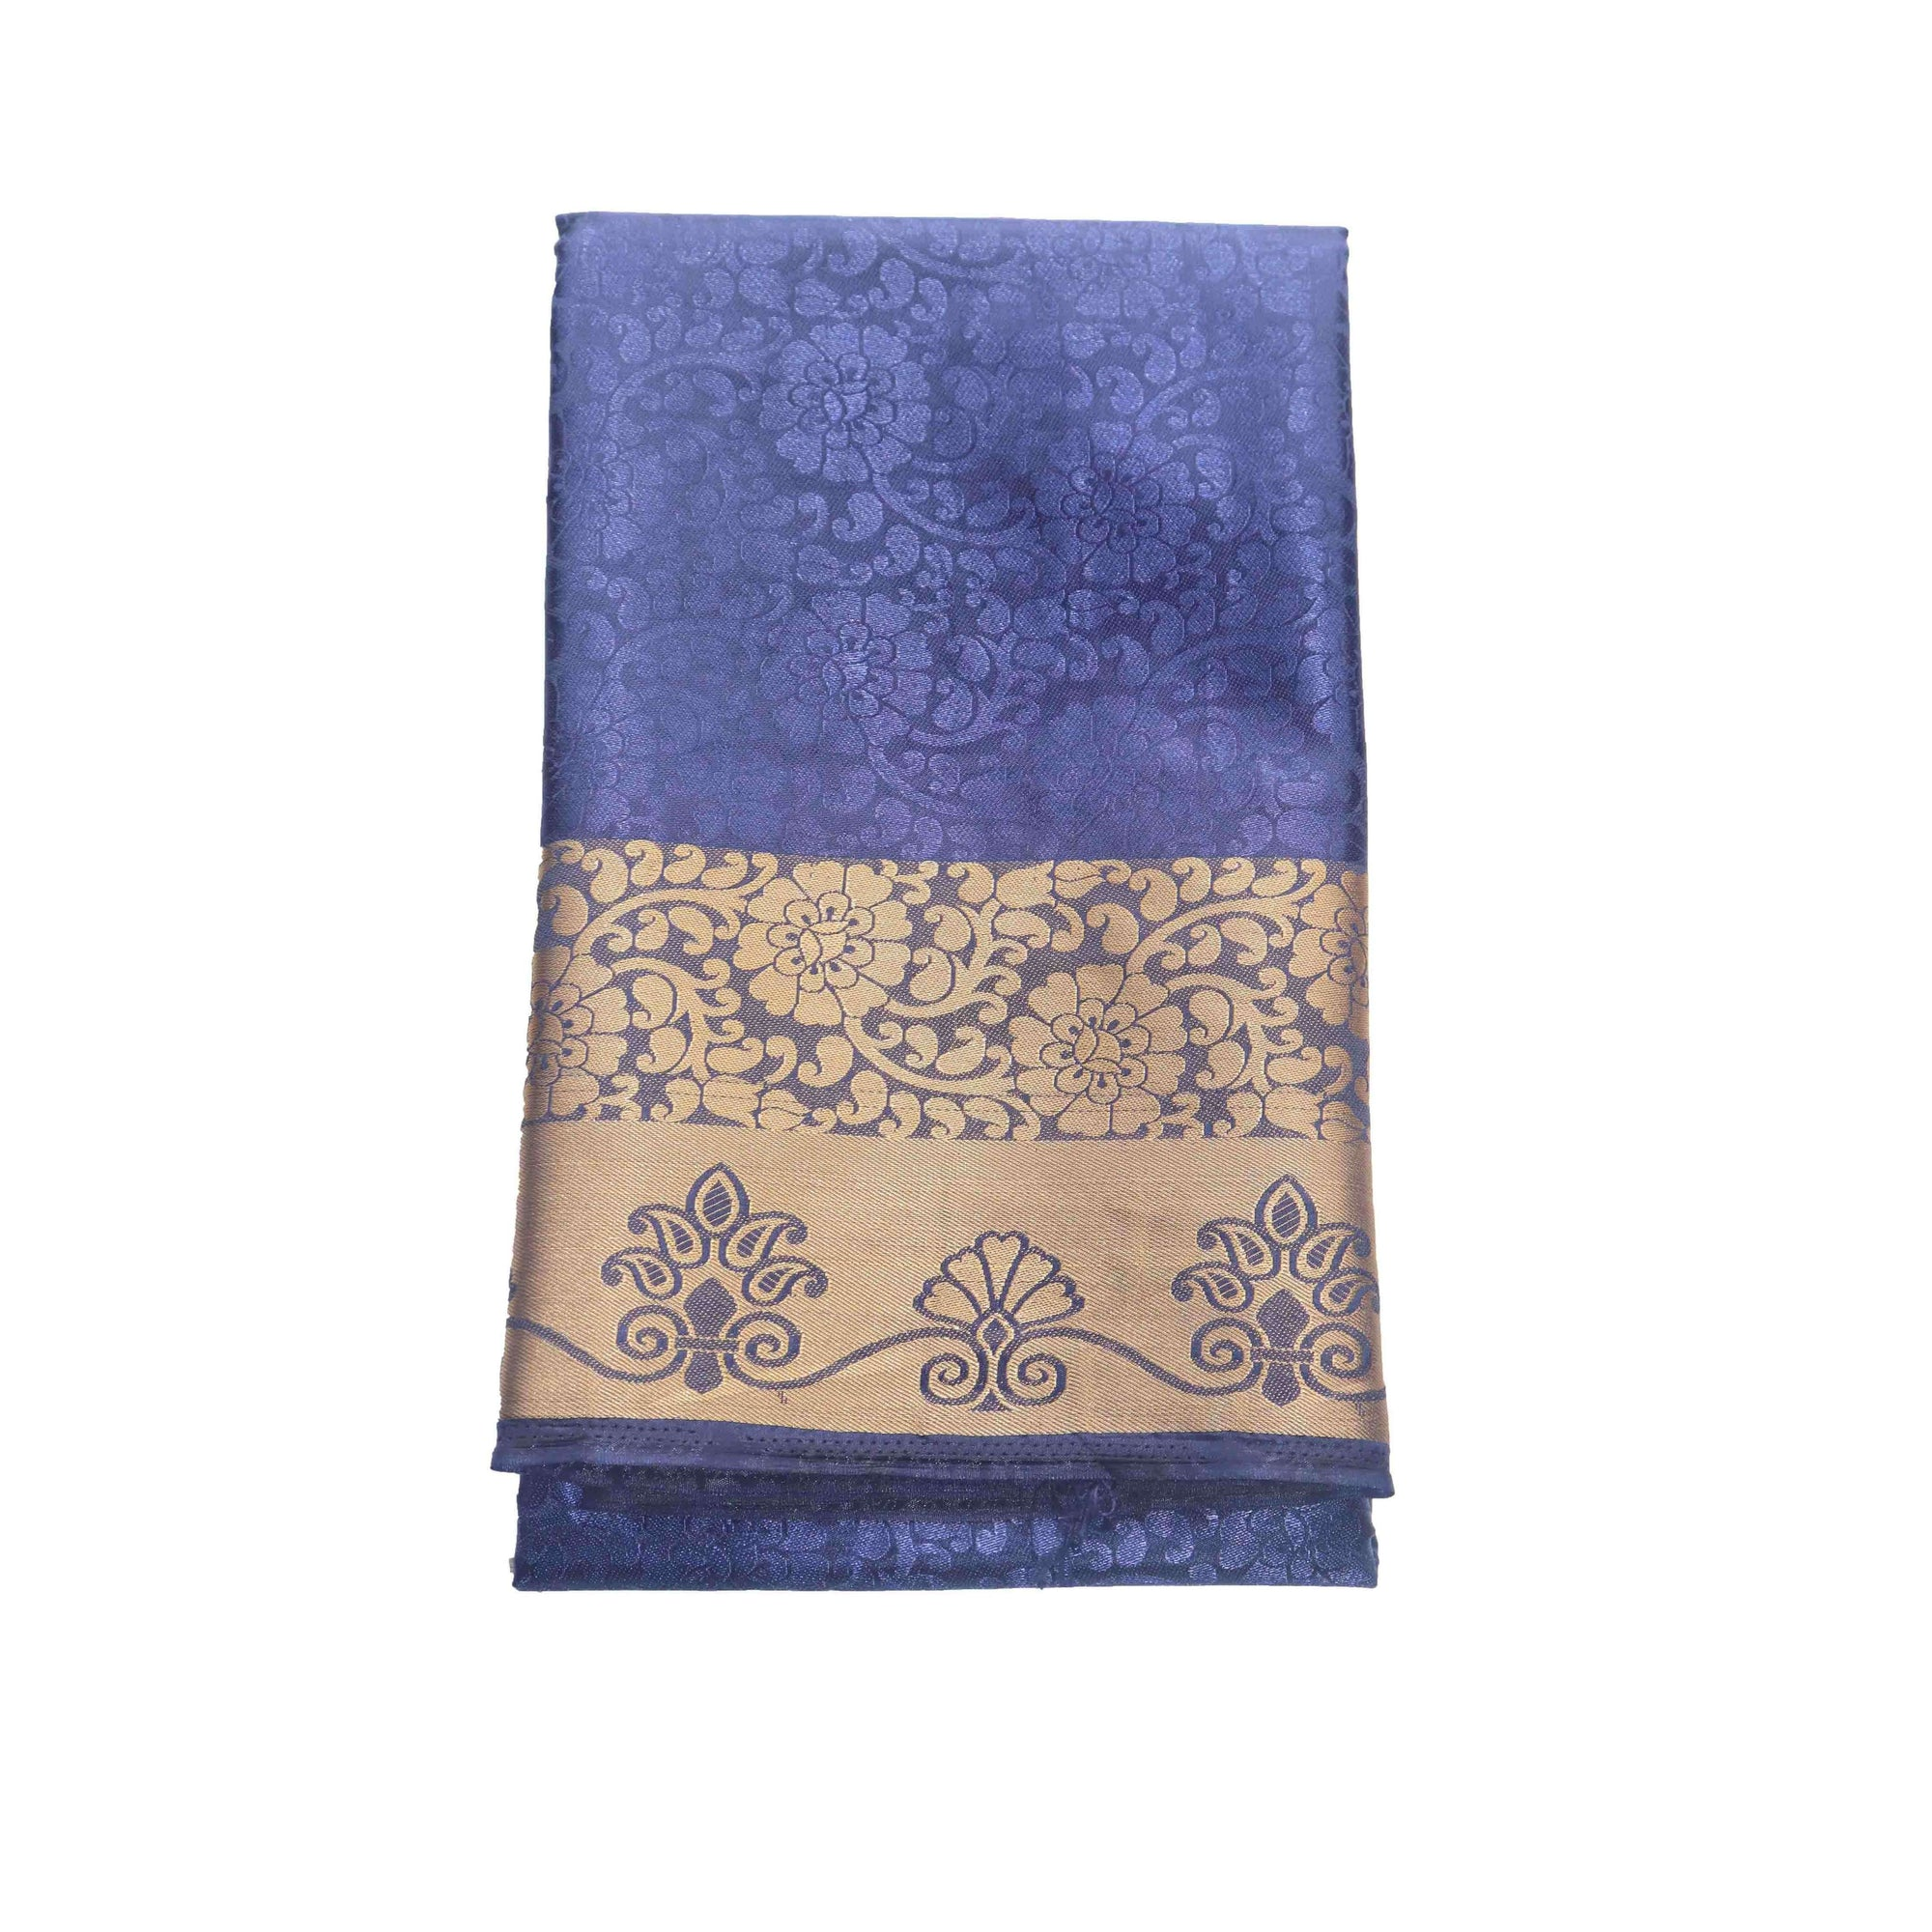 Arars Women's Kanchipuram Kanjivaram Pattu Style Balaton Embosed Plain Silk Saree With Blouse (456 NAVY )